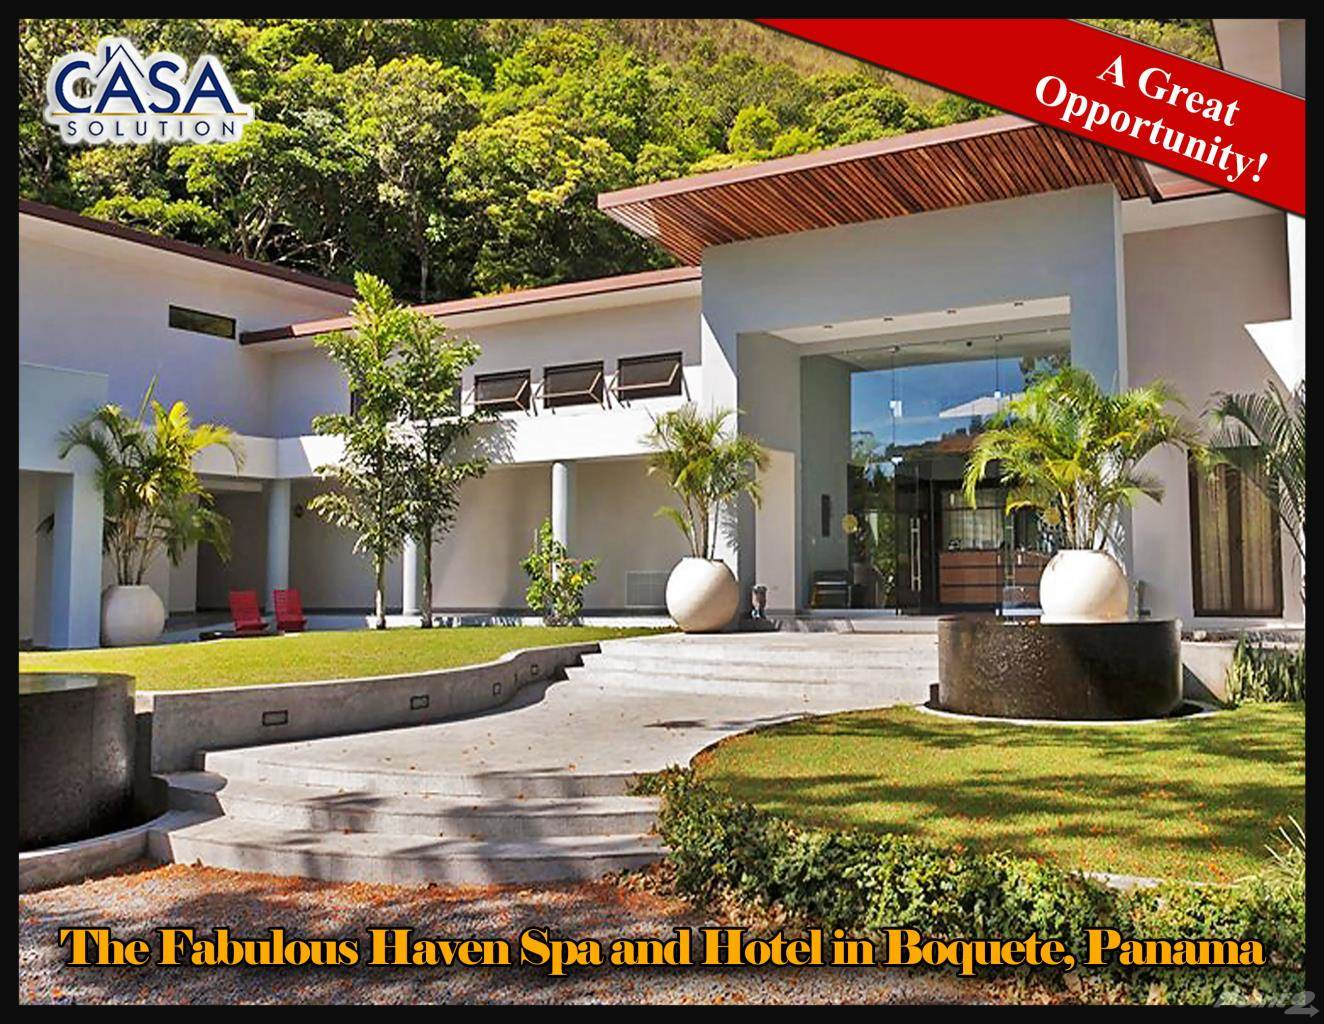 Residential For Sale in The Fabulous Haven Spa and Hotel in Boquete, Panama, Boquete, Chiriquí   , Panama